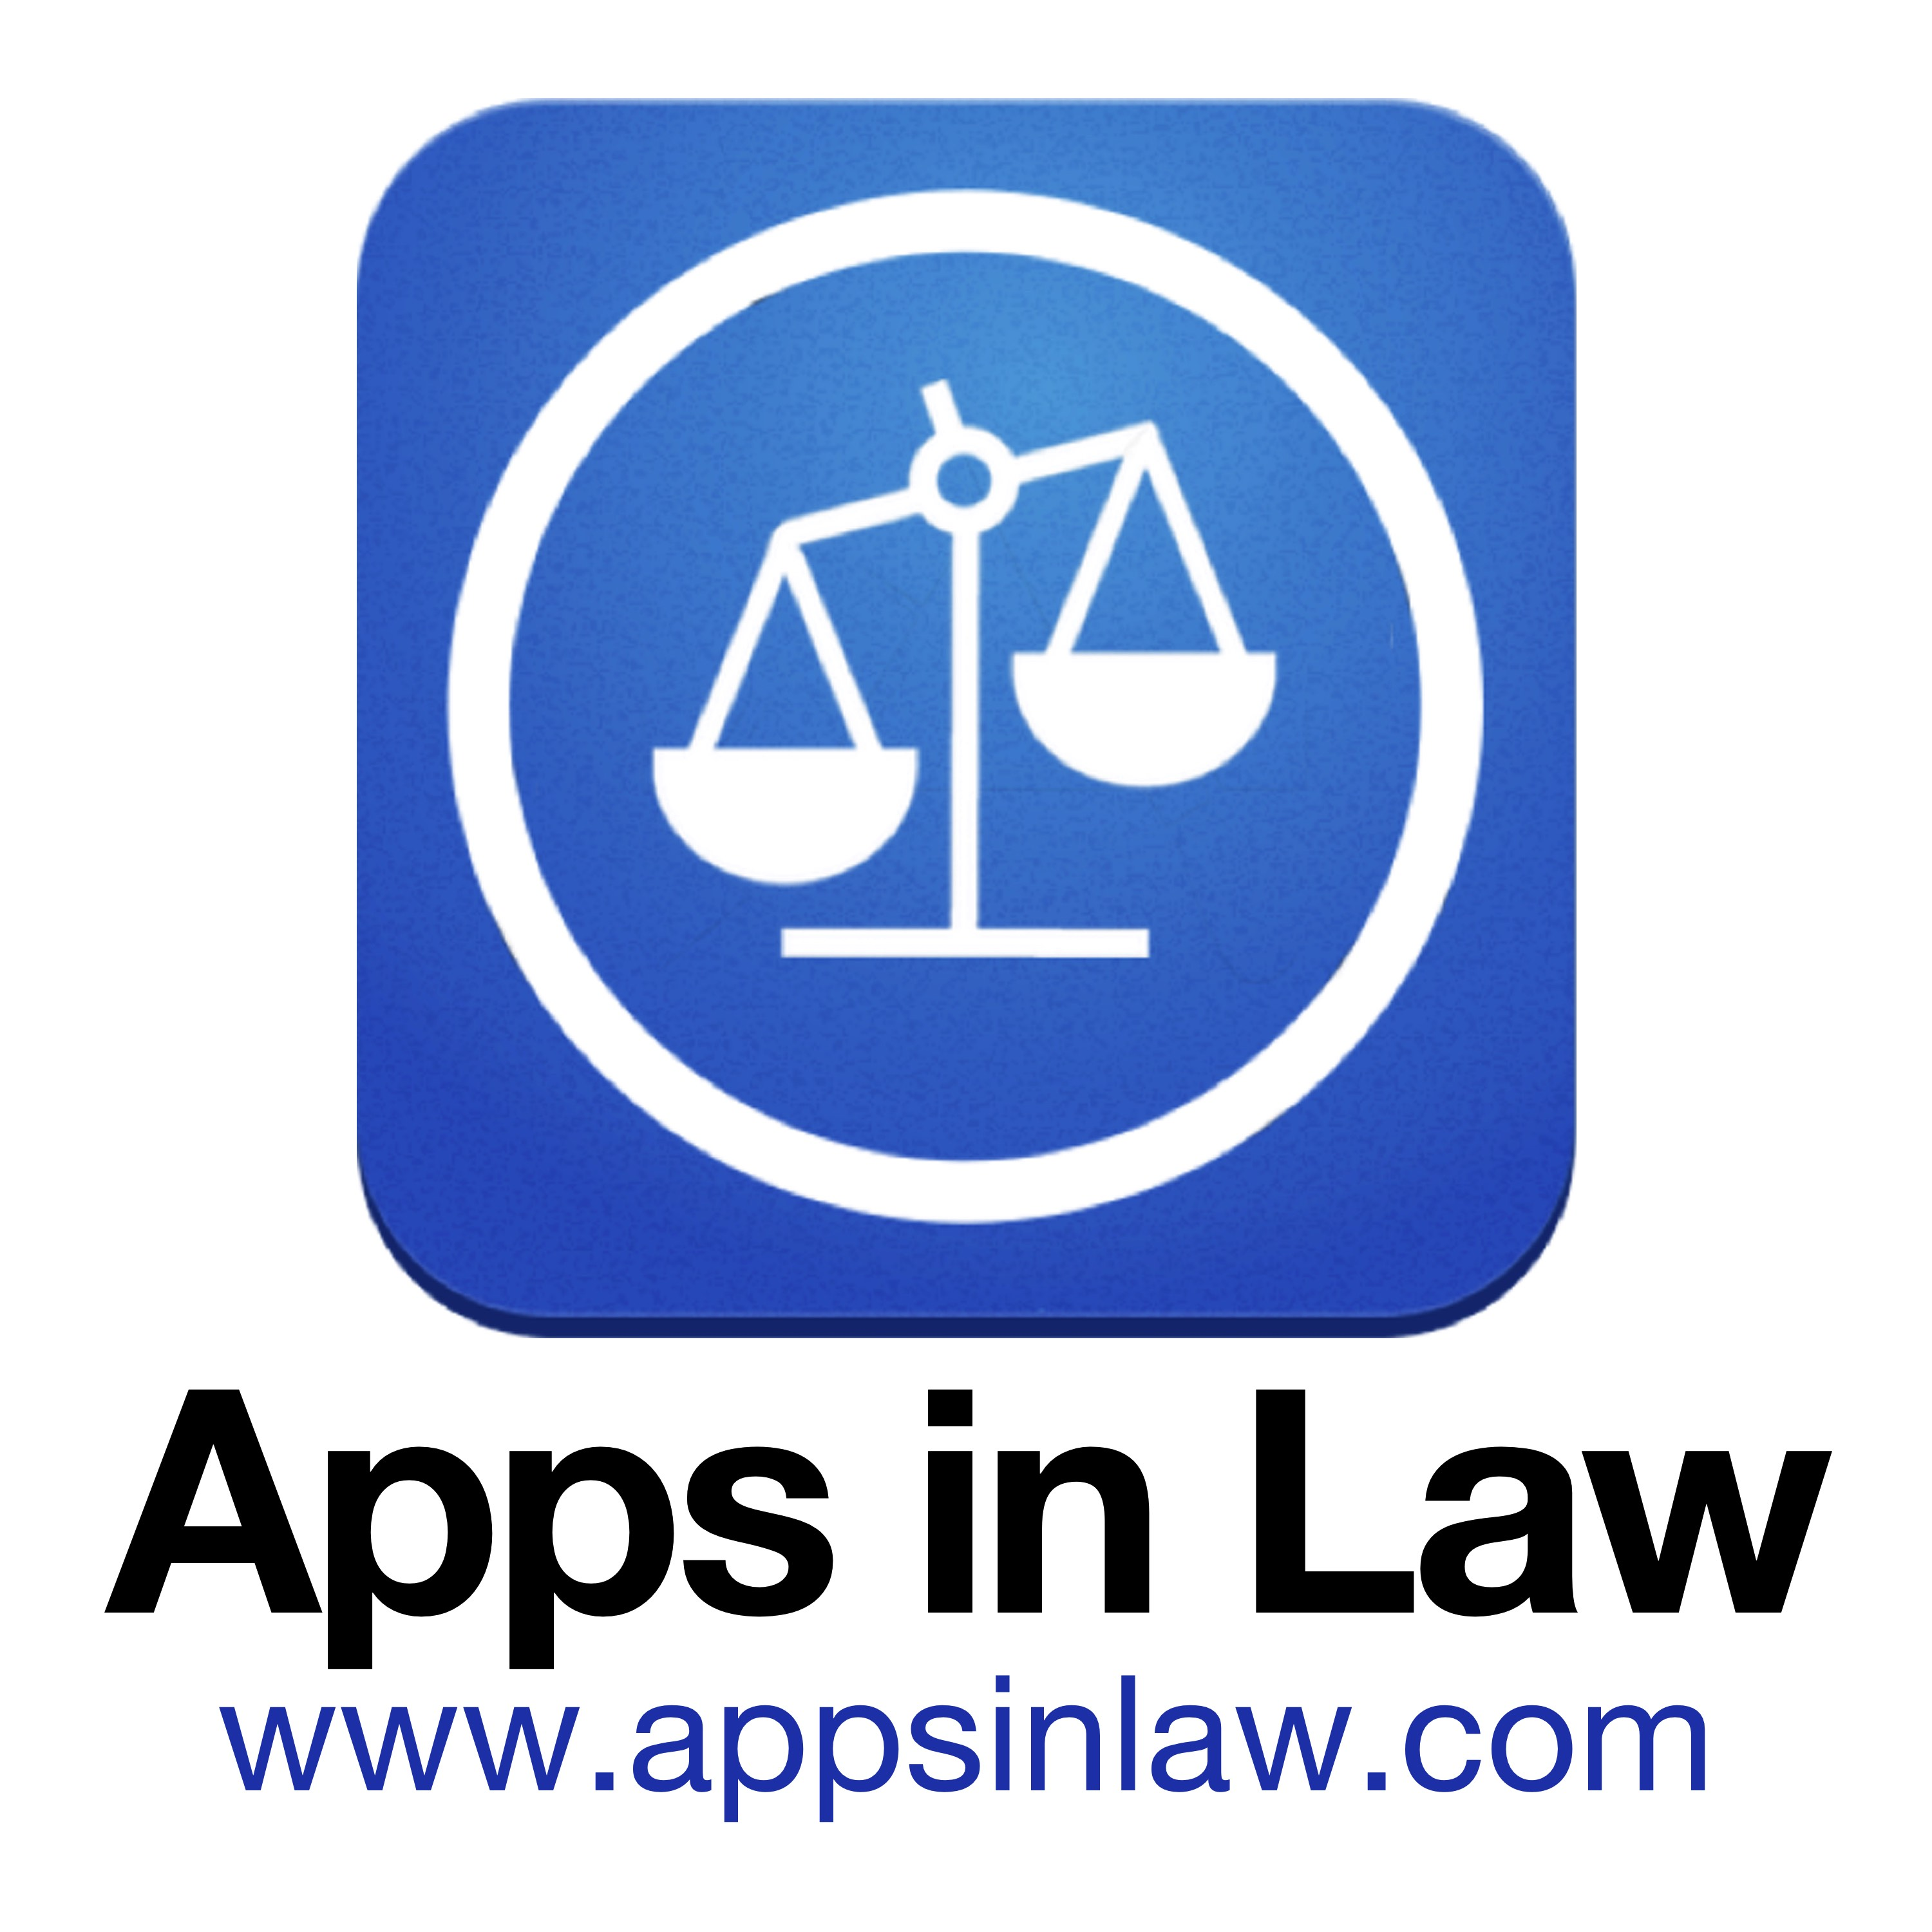 Apps in Law